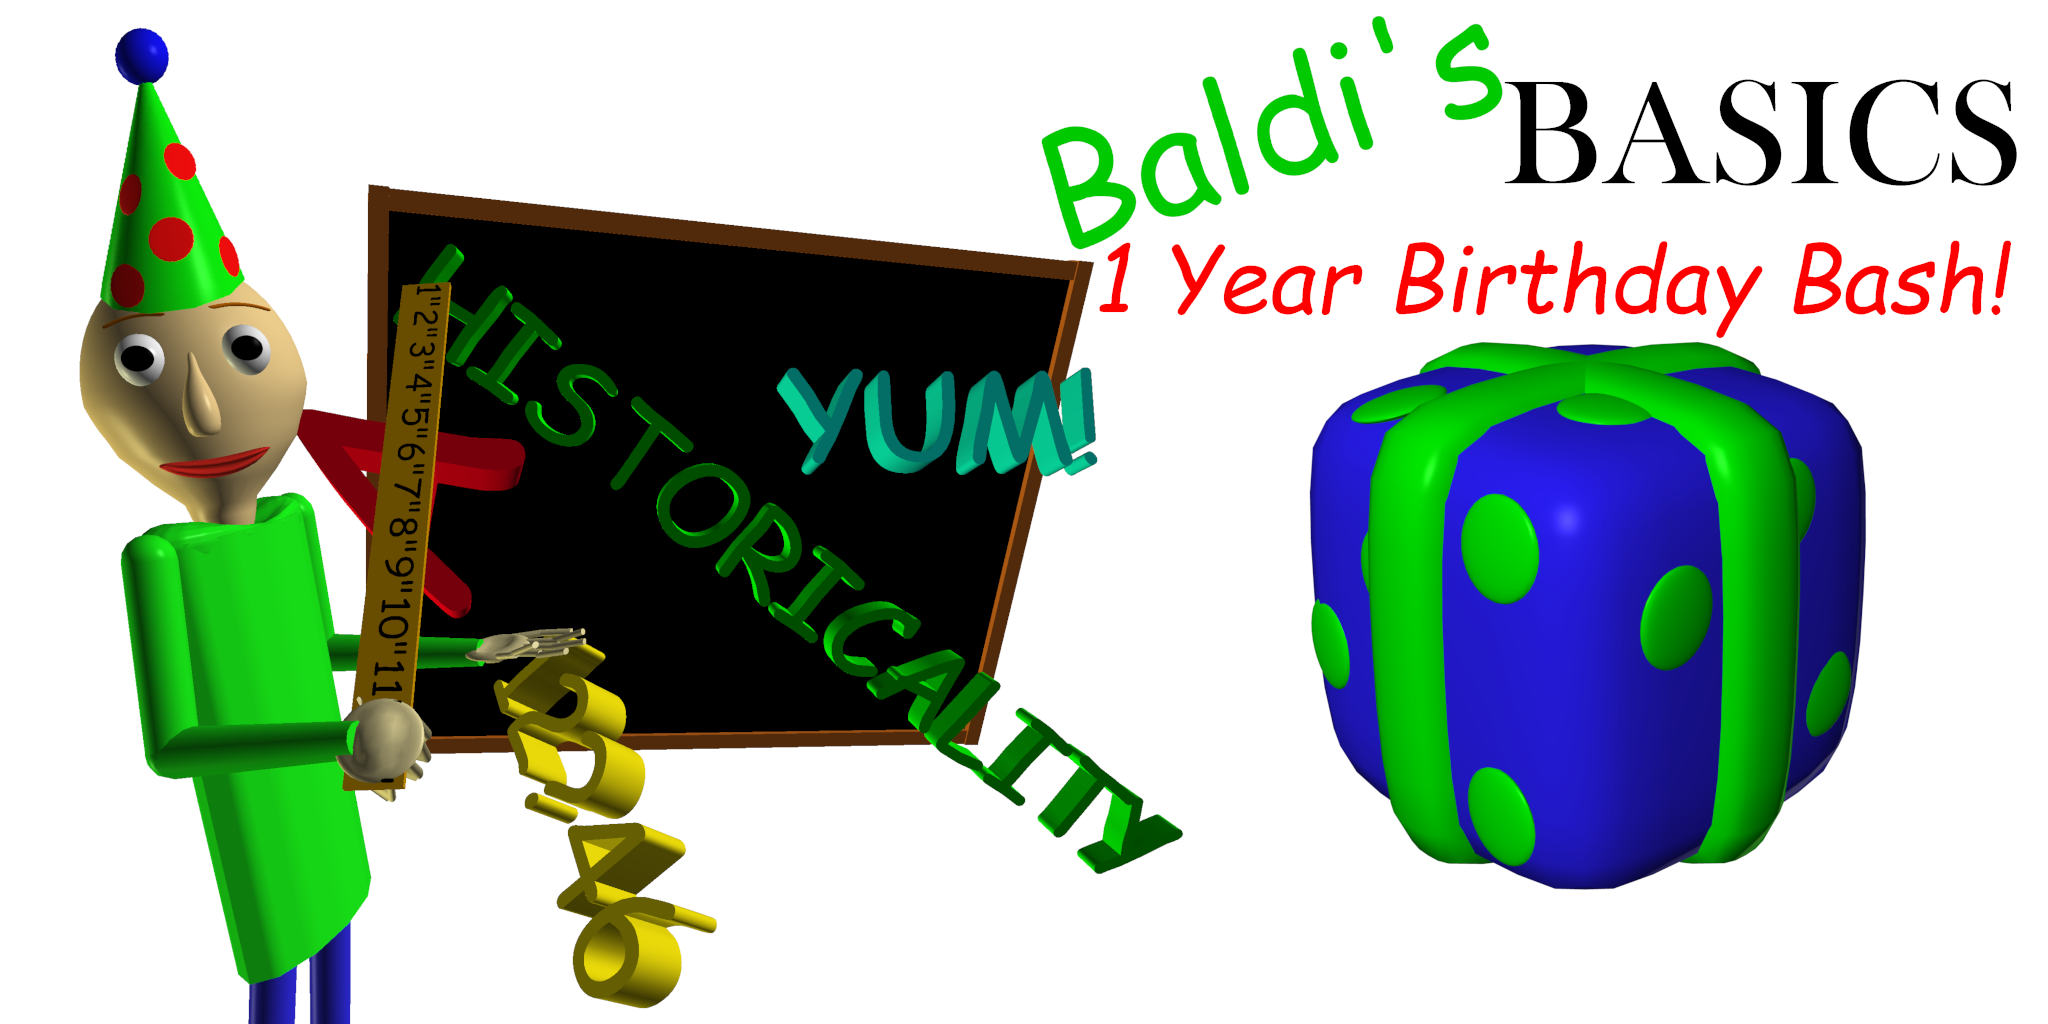 Baldi's Basics Birthday Bash